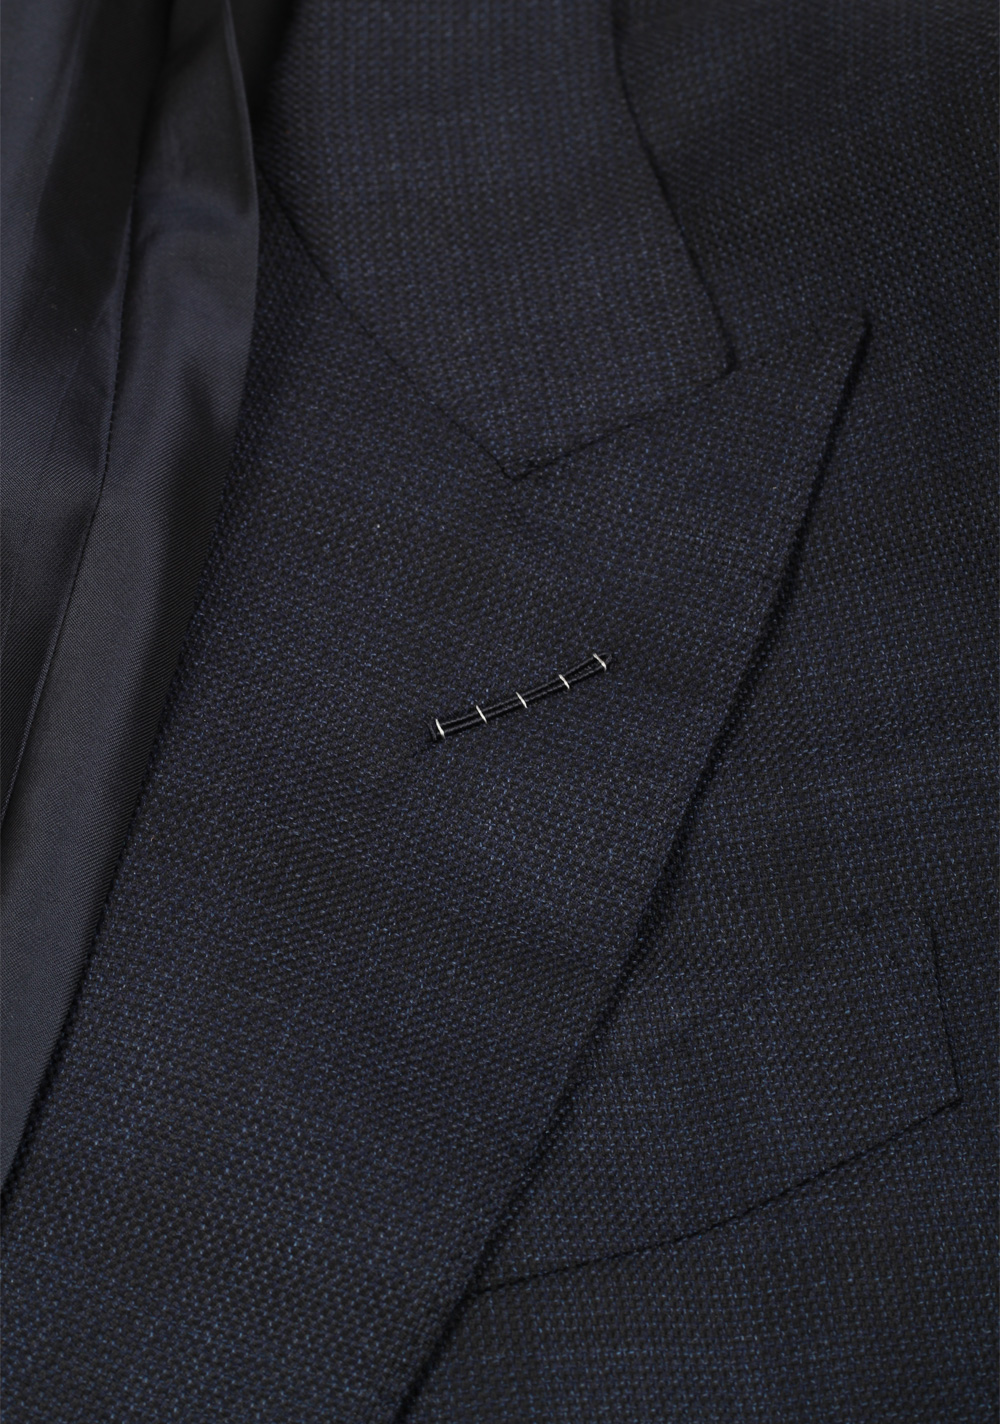 TOM FORD Shelton Checked Blue Suit Size 48 / 38R U.S. In Wool Silk | Costume Limité